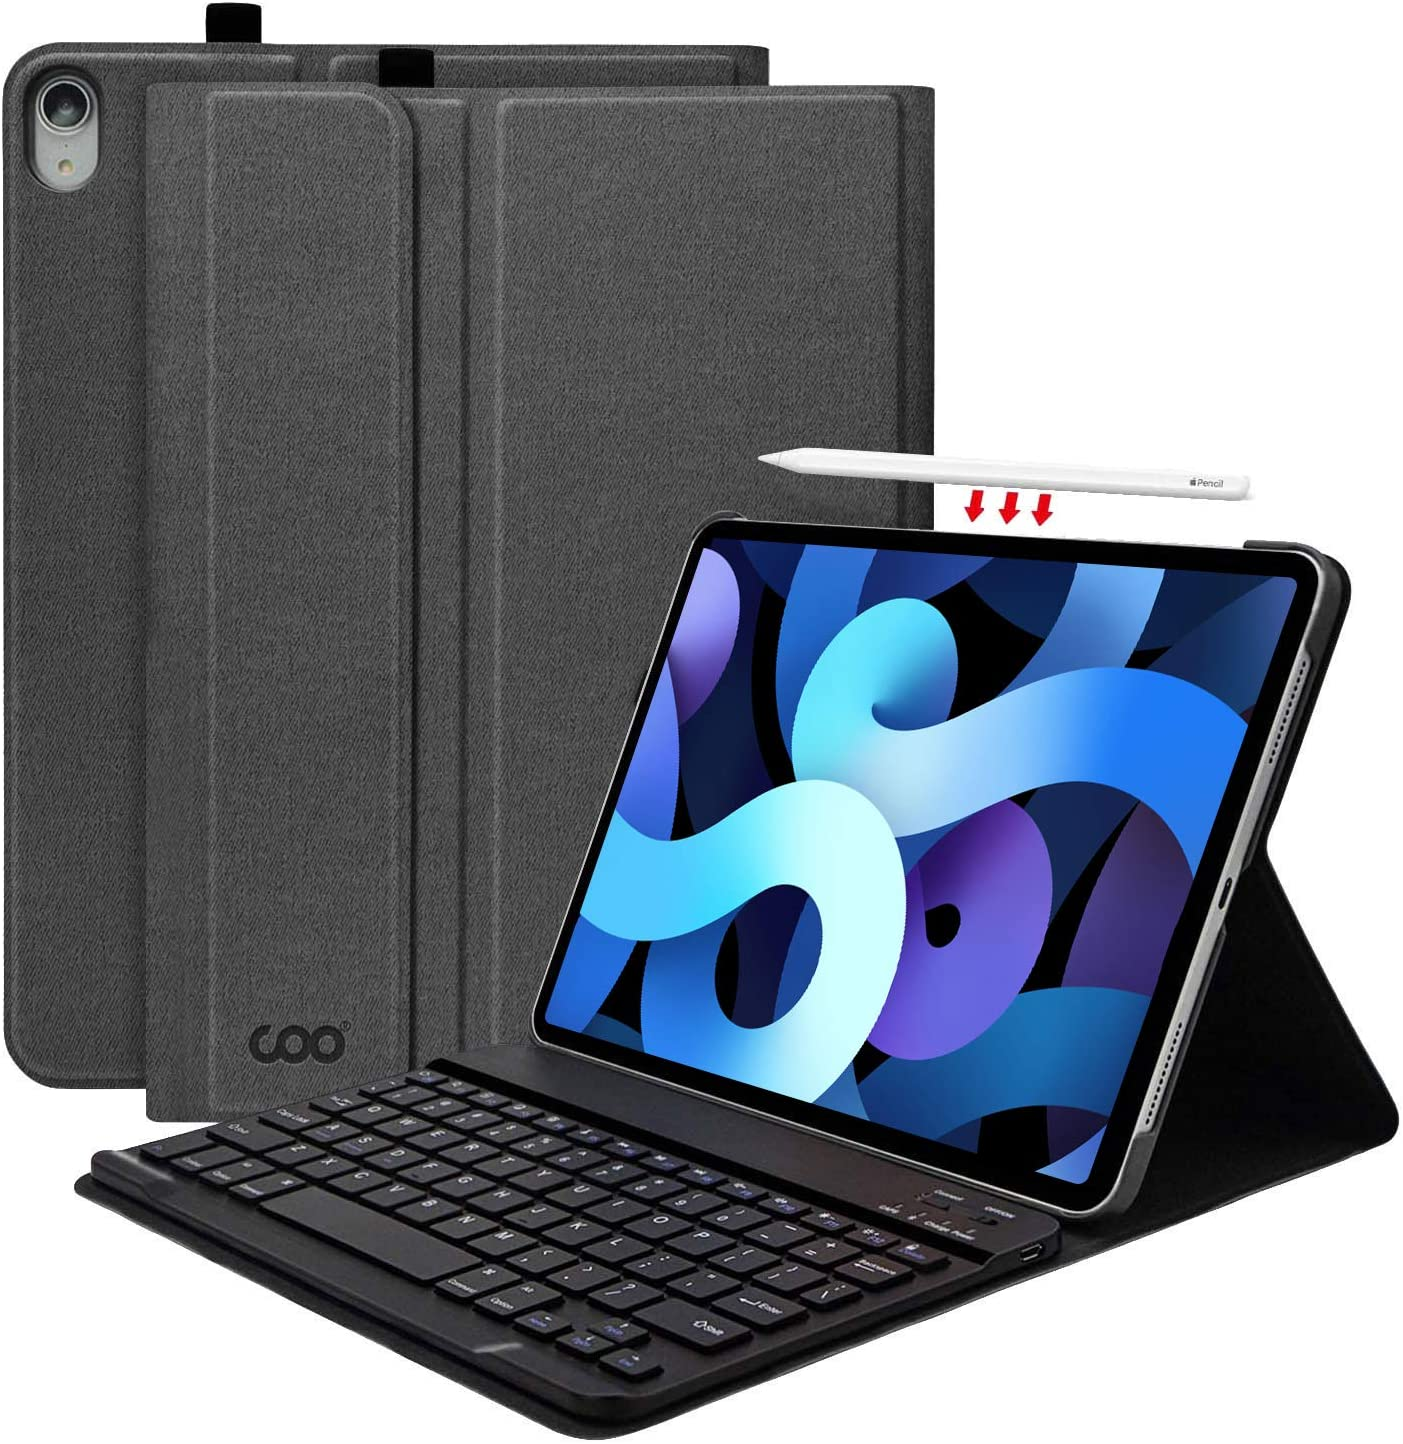 New iPad Air 4th Generation 10.9 Keyboard Case 2020, iPad Air 10.9 Case with Magnetic Detachable Keyboard for New iPad Air 4th Gen